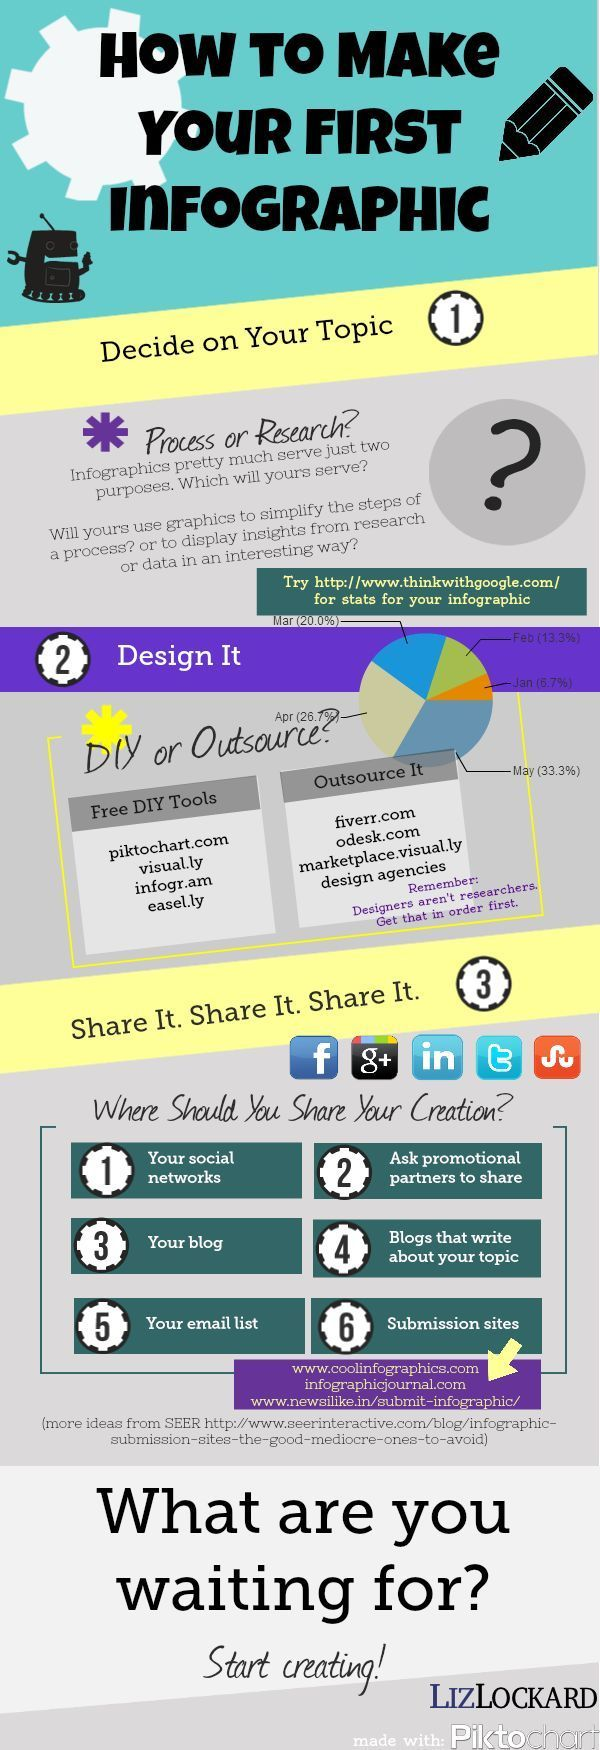 Check this out: An infographic about creating an infographic #infographics